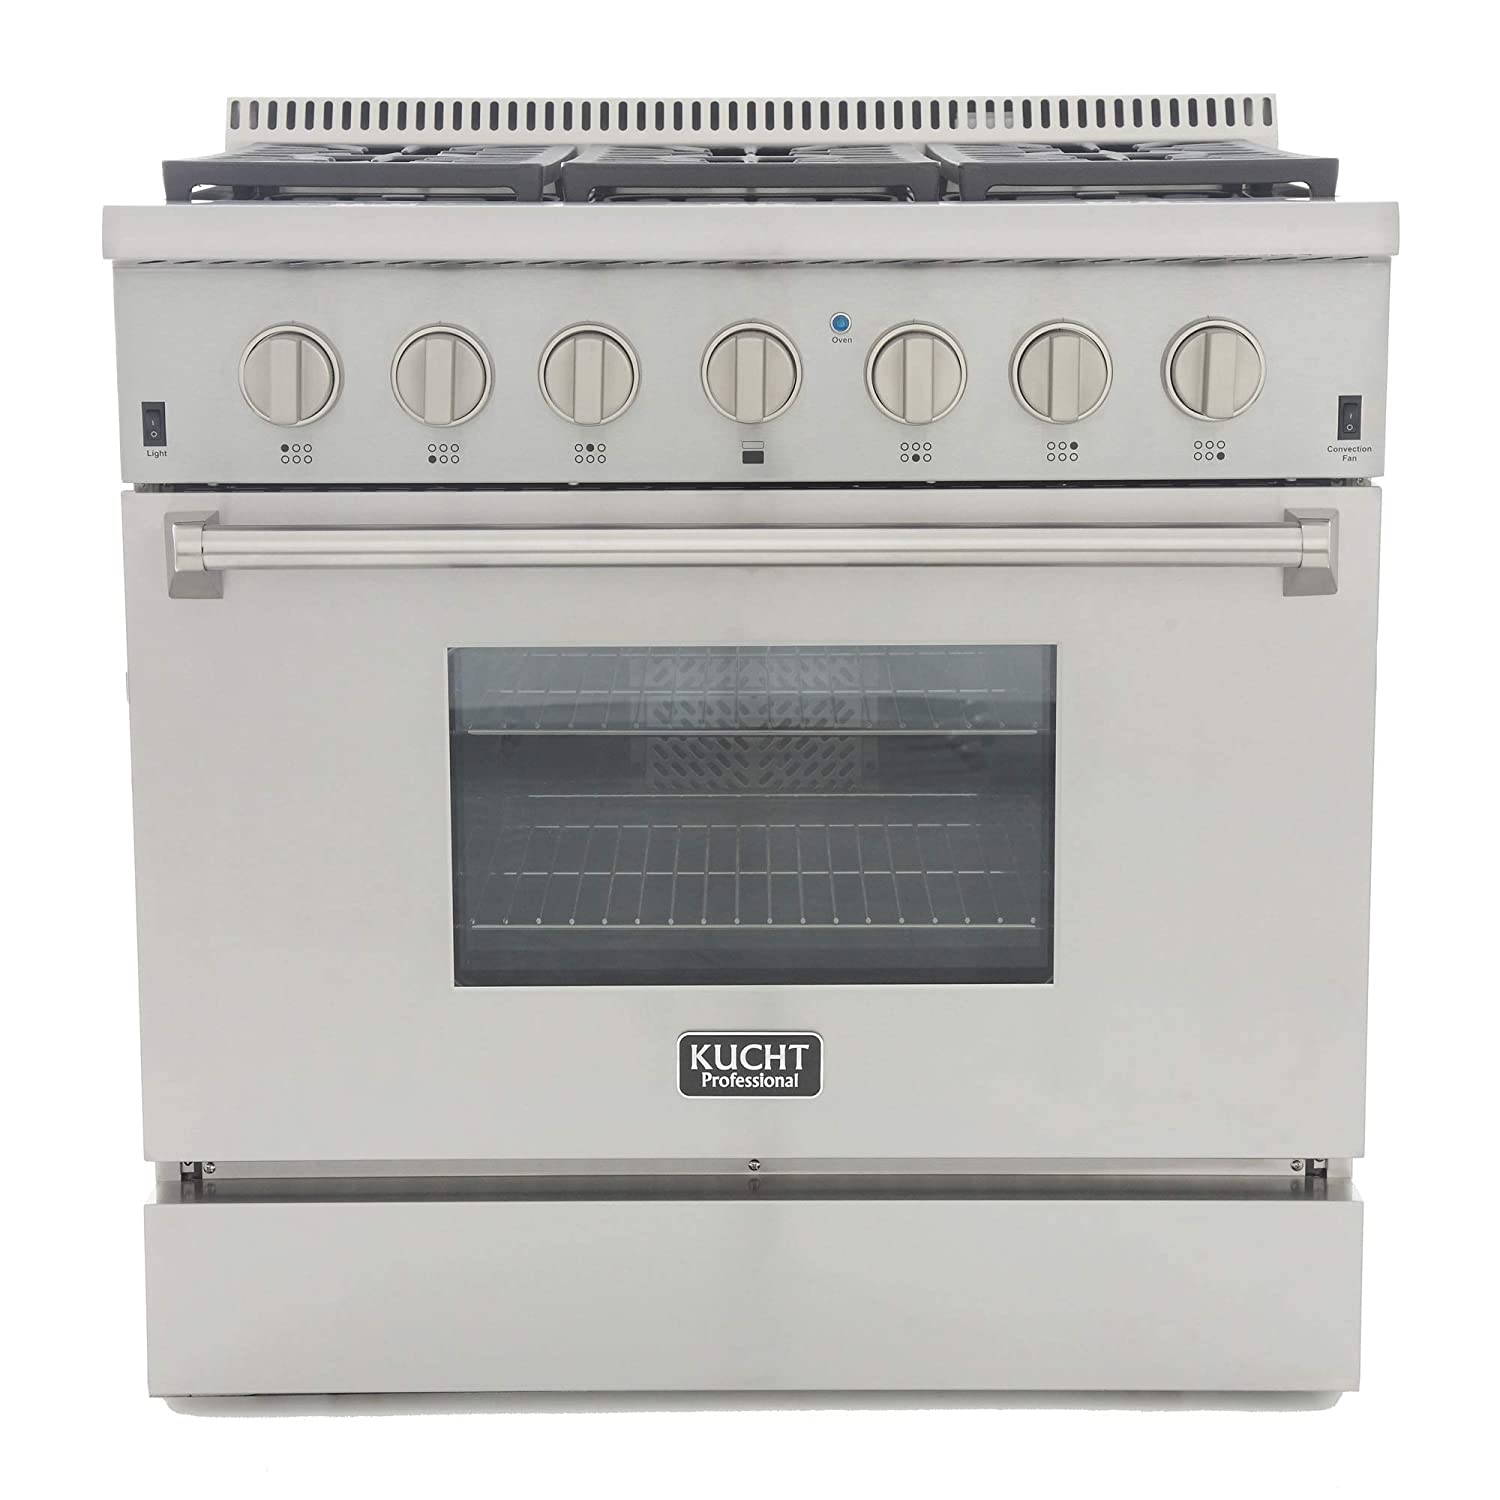 "Kucht KRD366F-S Professional 36"" 5.2 cu. ft. Dual Fuel Range for Natural Gas, Stainless-Steel, Classic Silver"